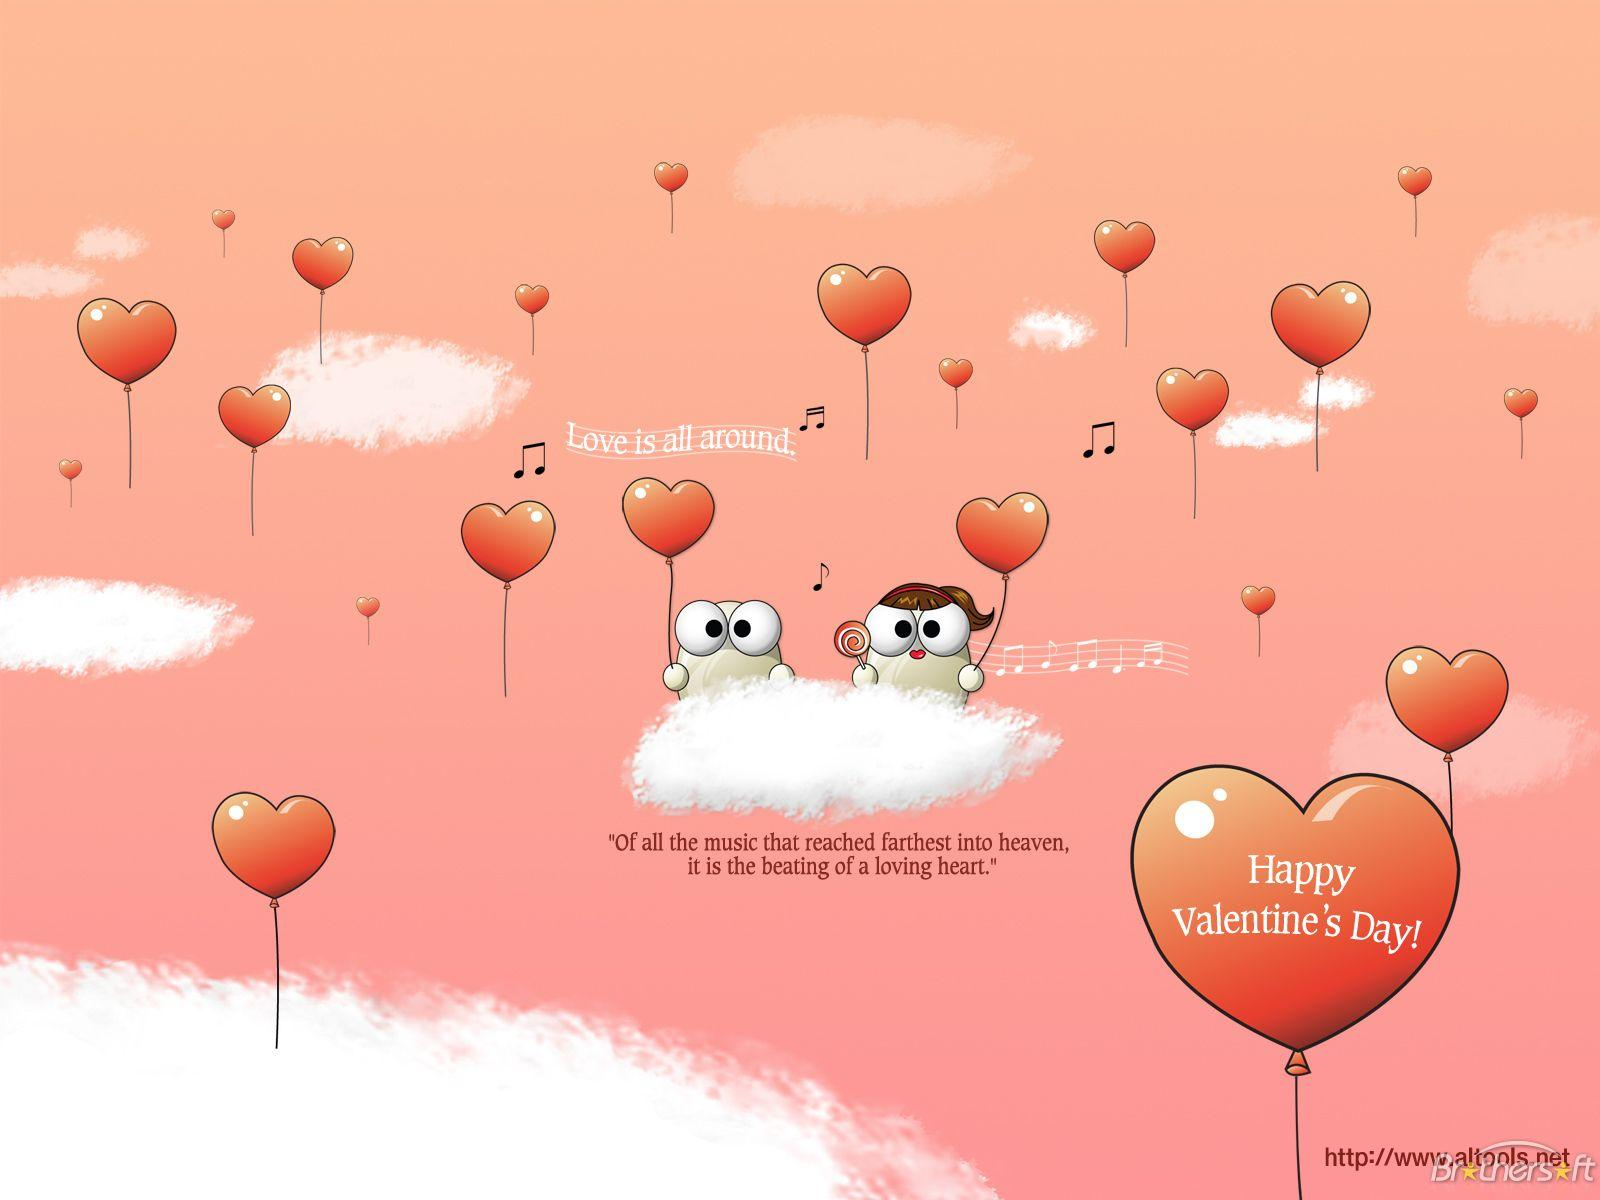 Free Puppy Valentine Wallpaper - inn.spb.ru - ghibli wallpapers